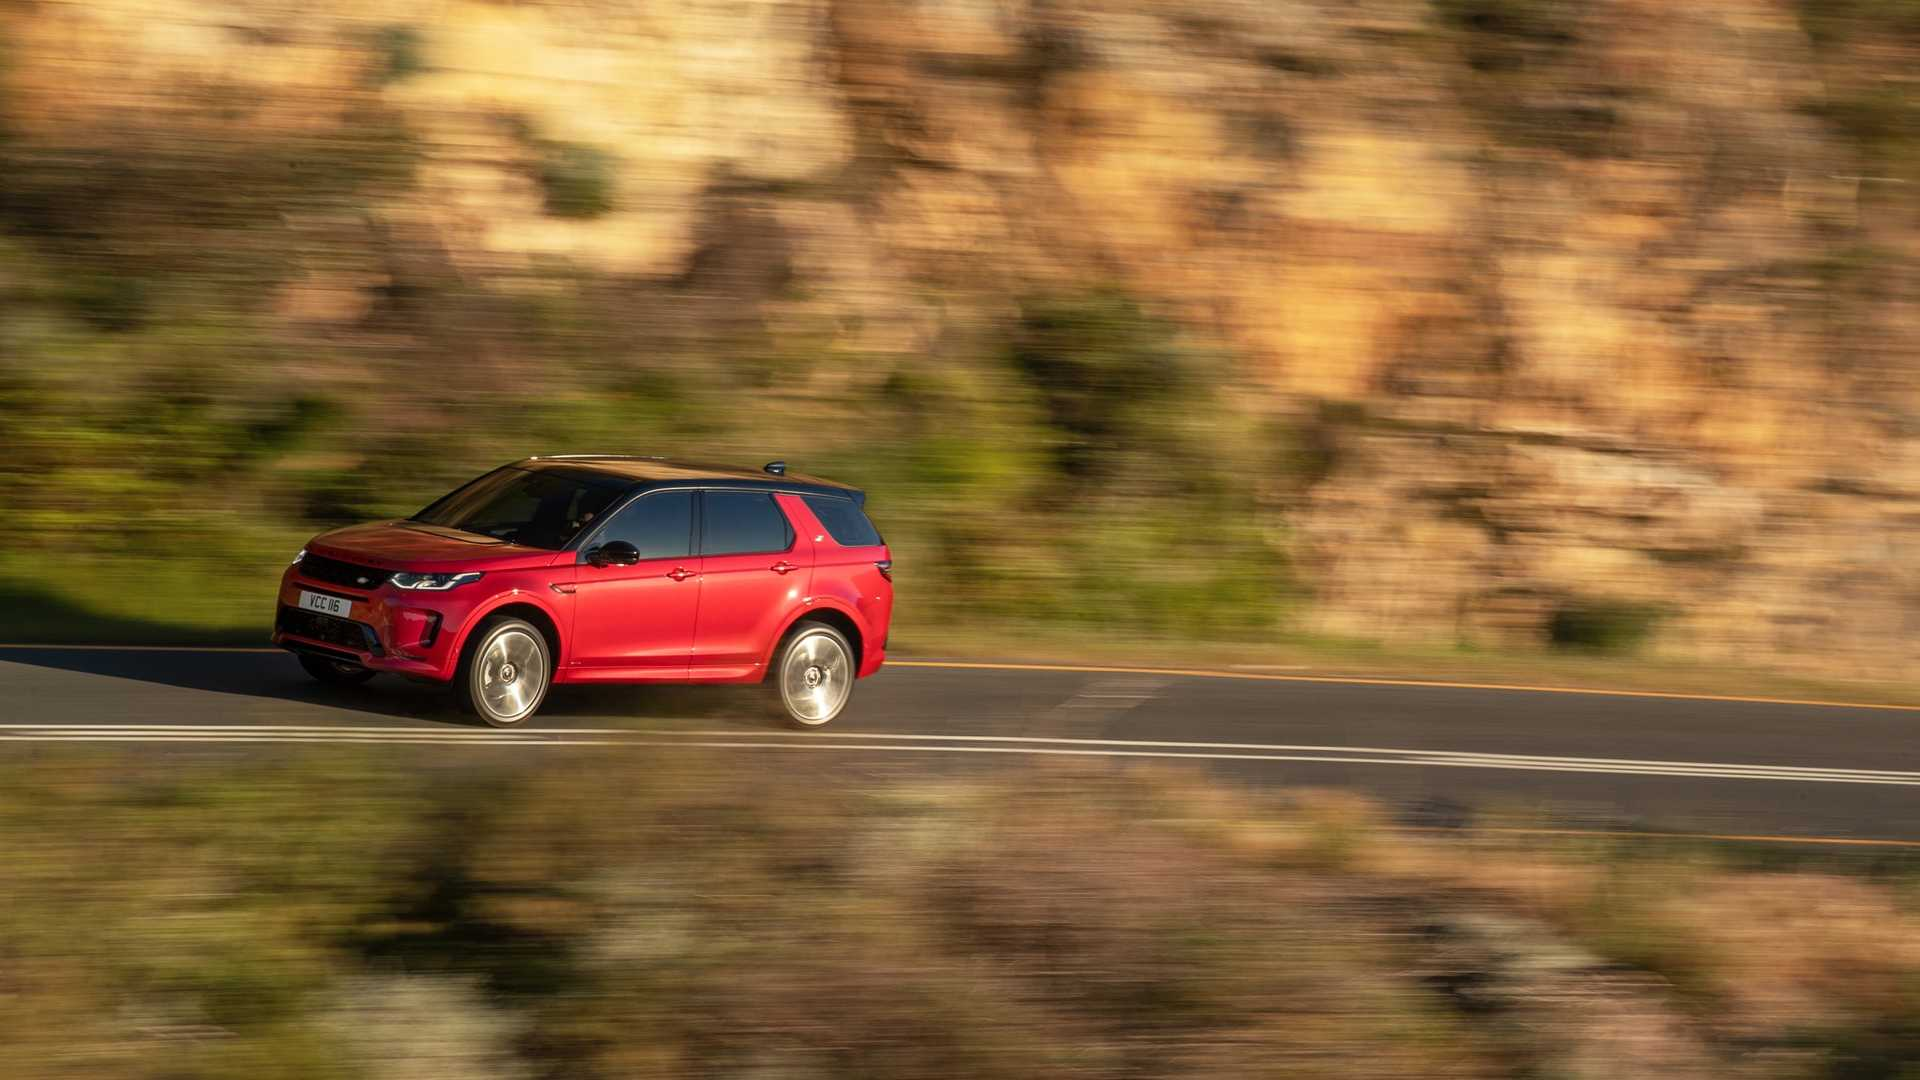 2020-land-rover-discovery-sport-17